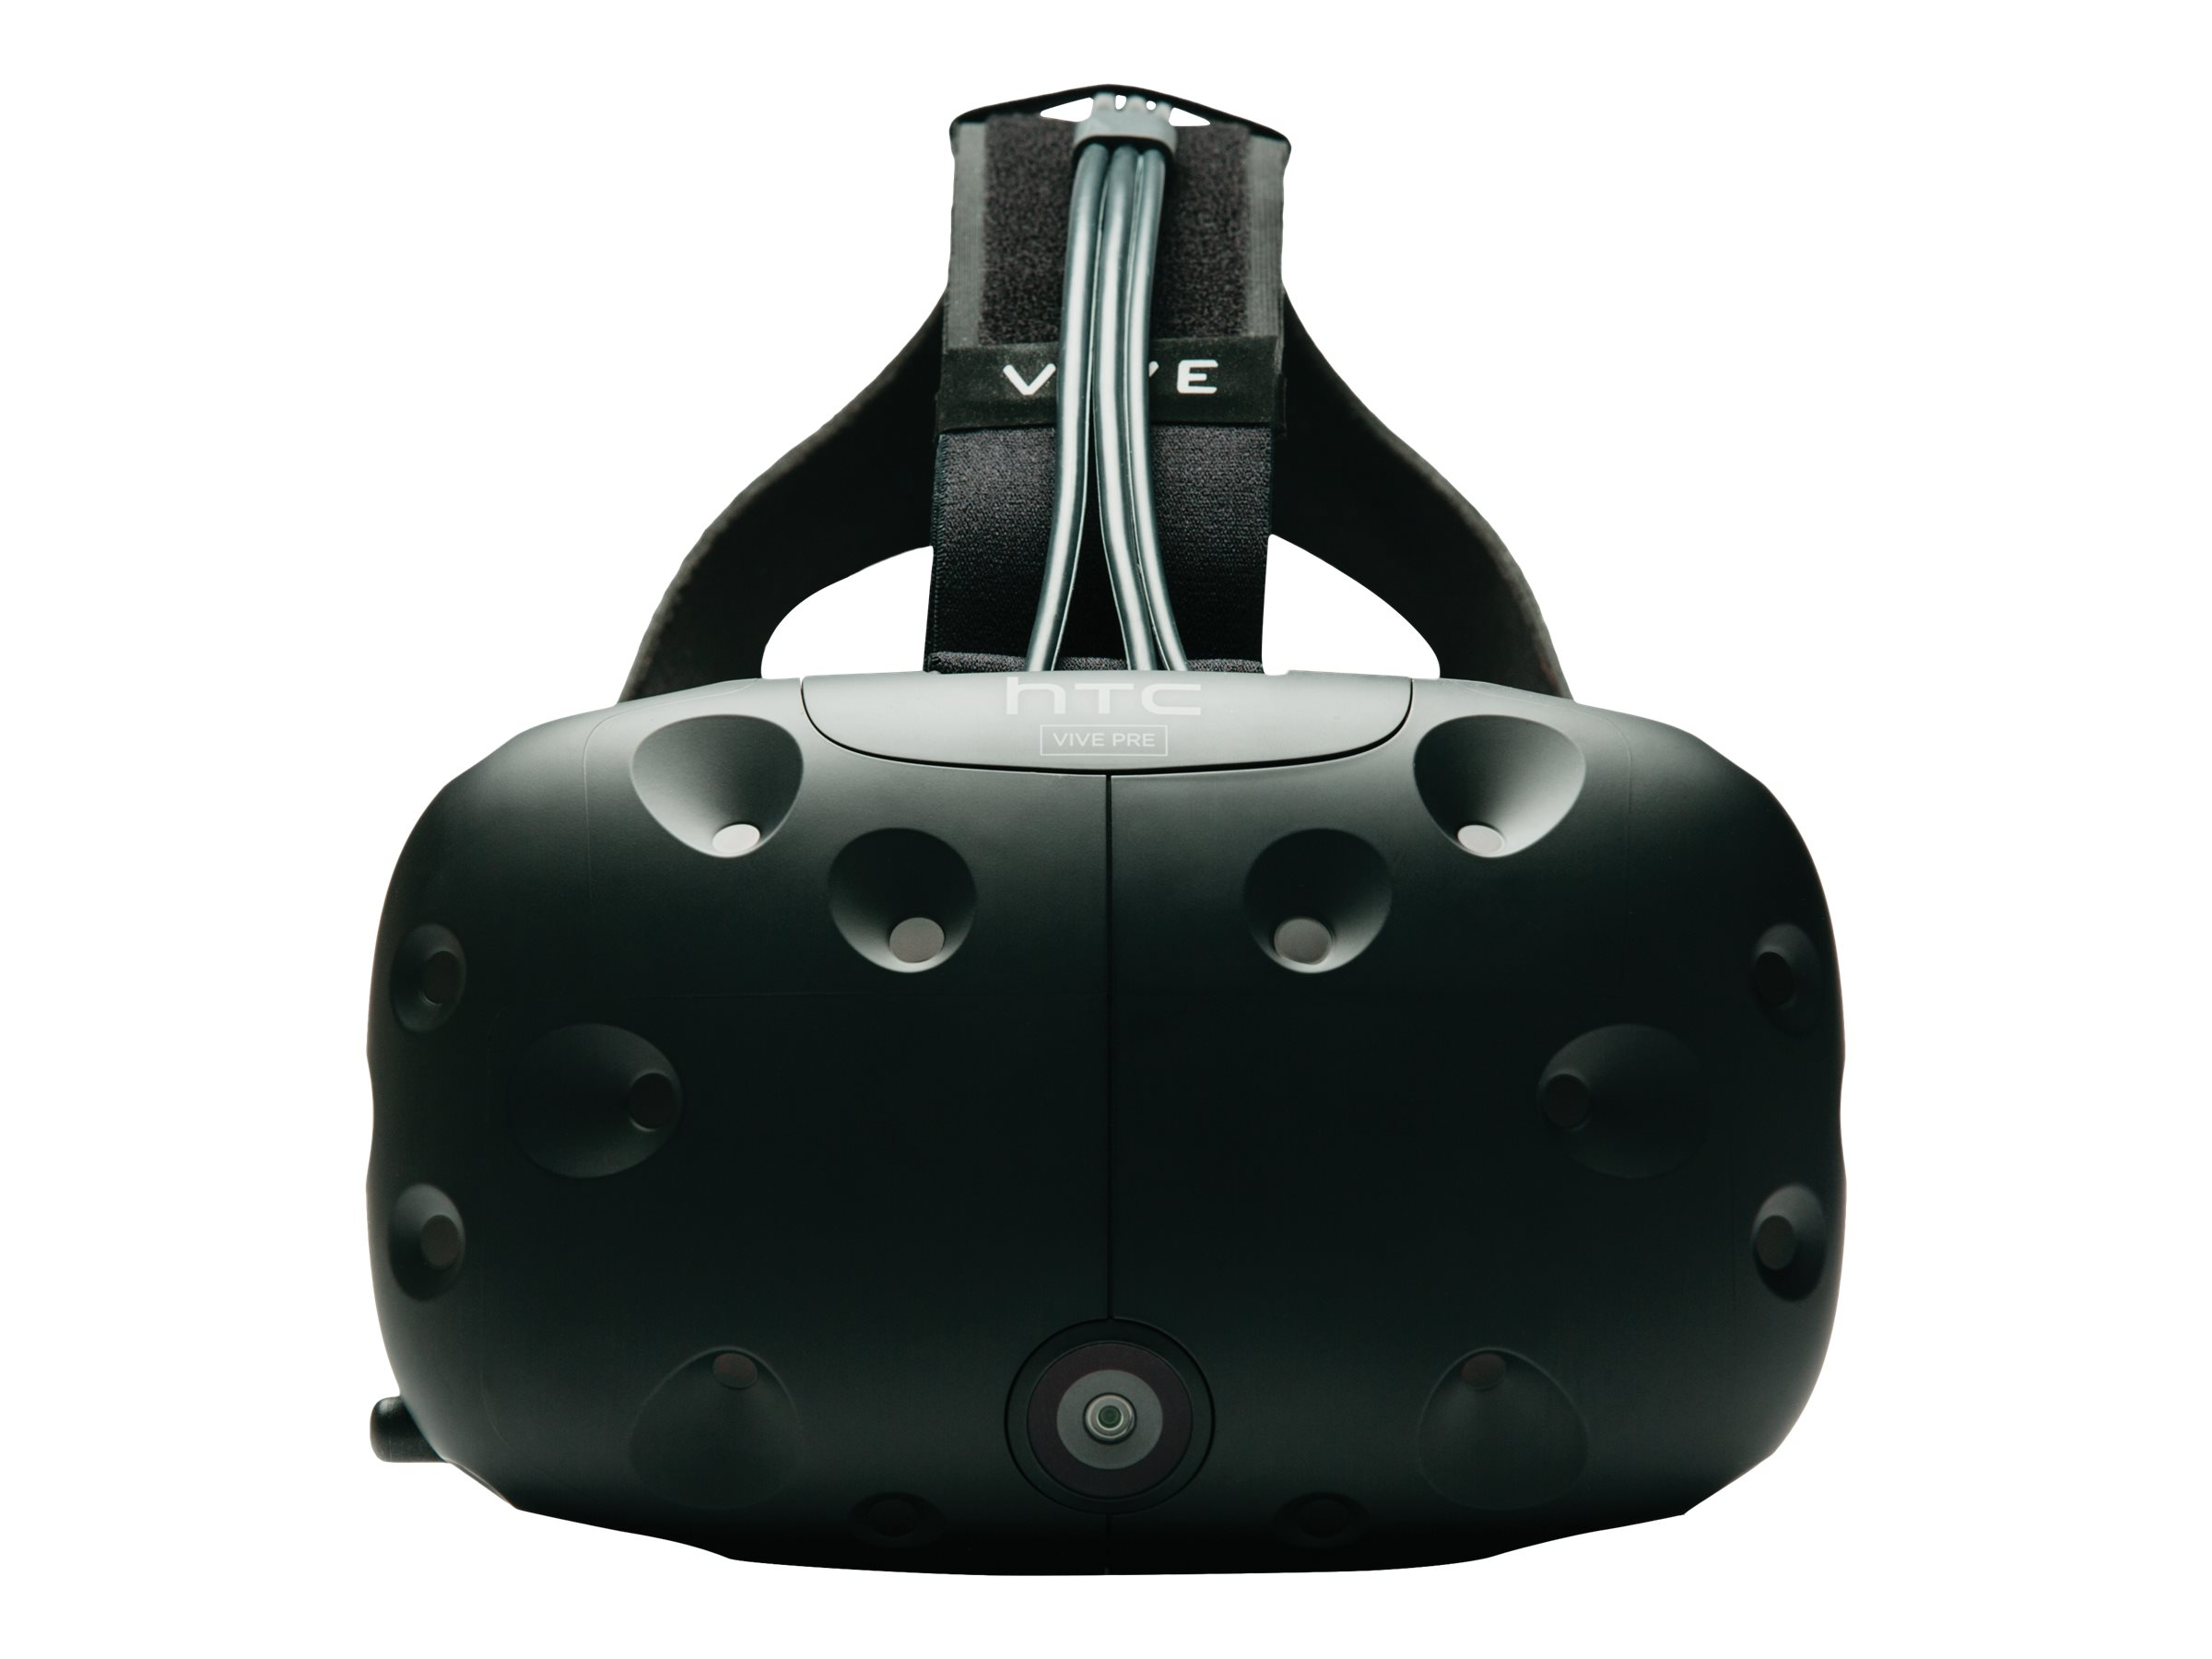 HTC VIVE - Business Edition - Virtual-Reality-Headset - tragbar - 2160 x 1200 - HDMI, DisplayPort